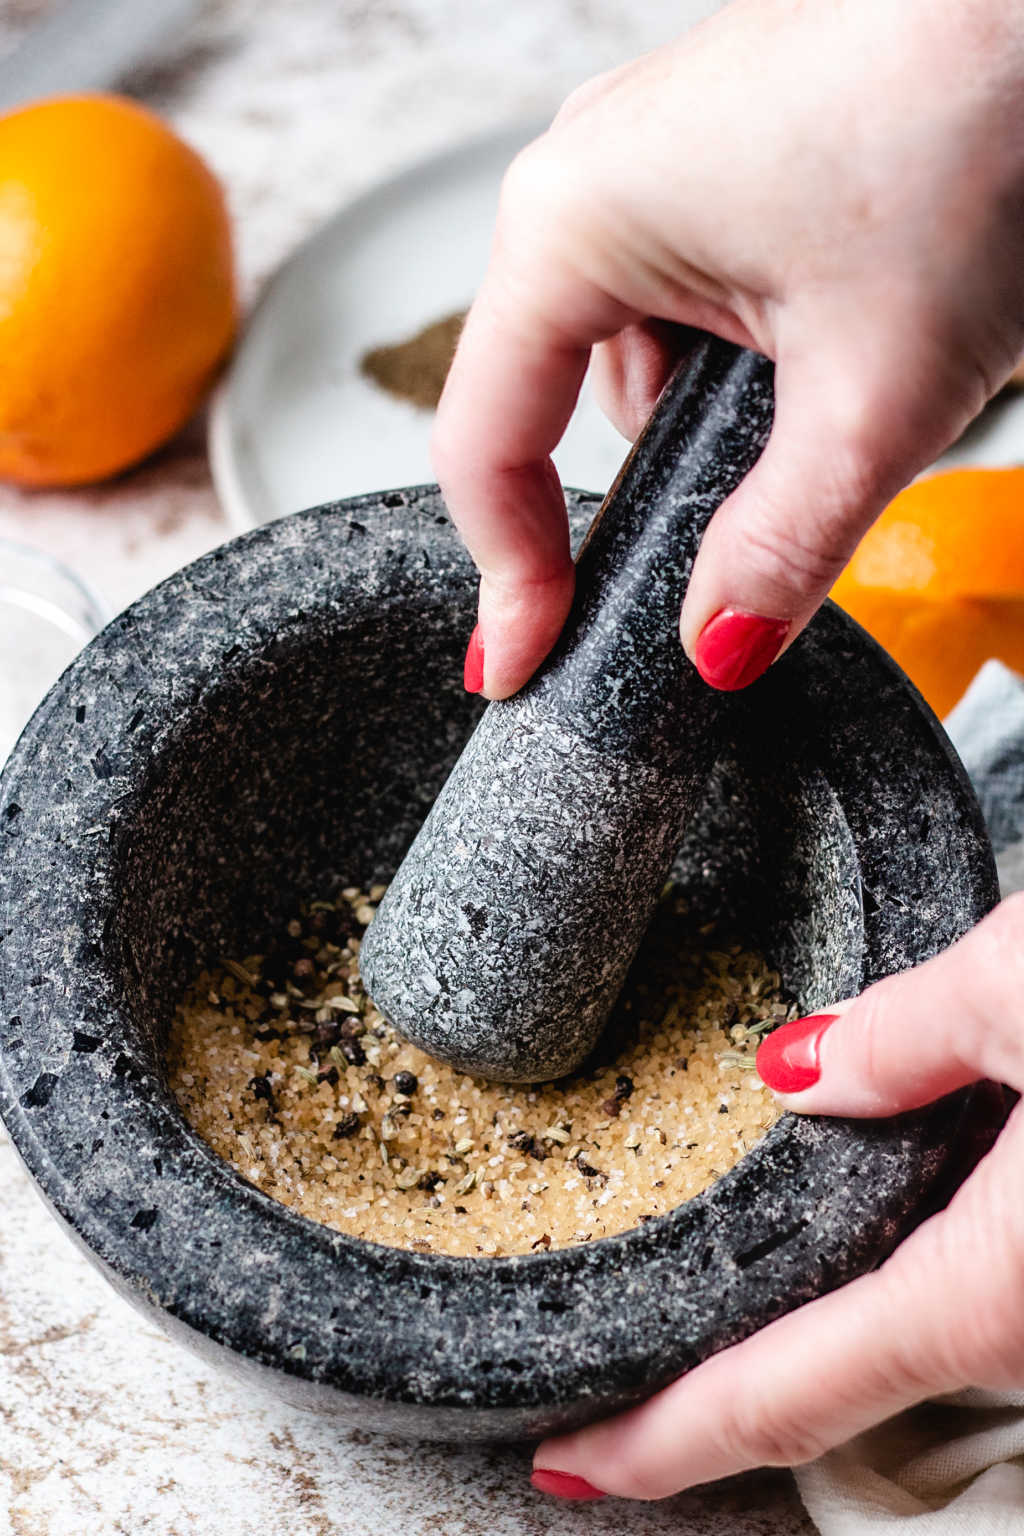 crushing spices with a pestle in a granite mortar for salmon rub.